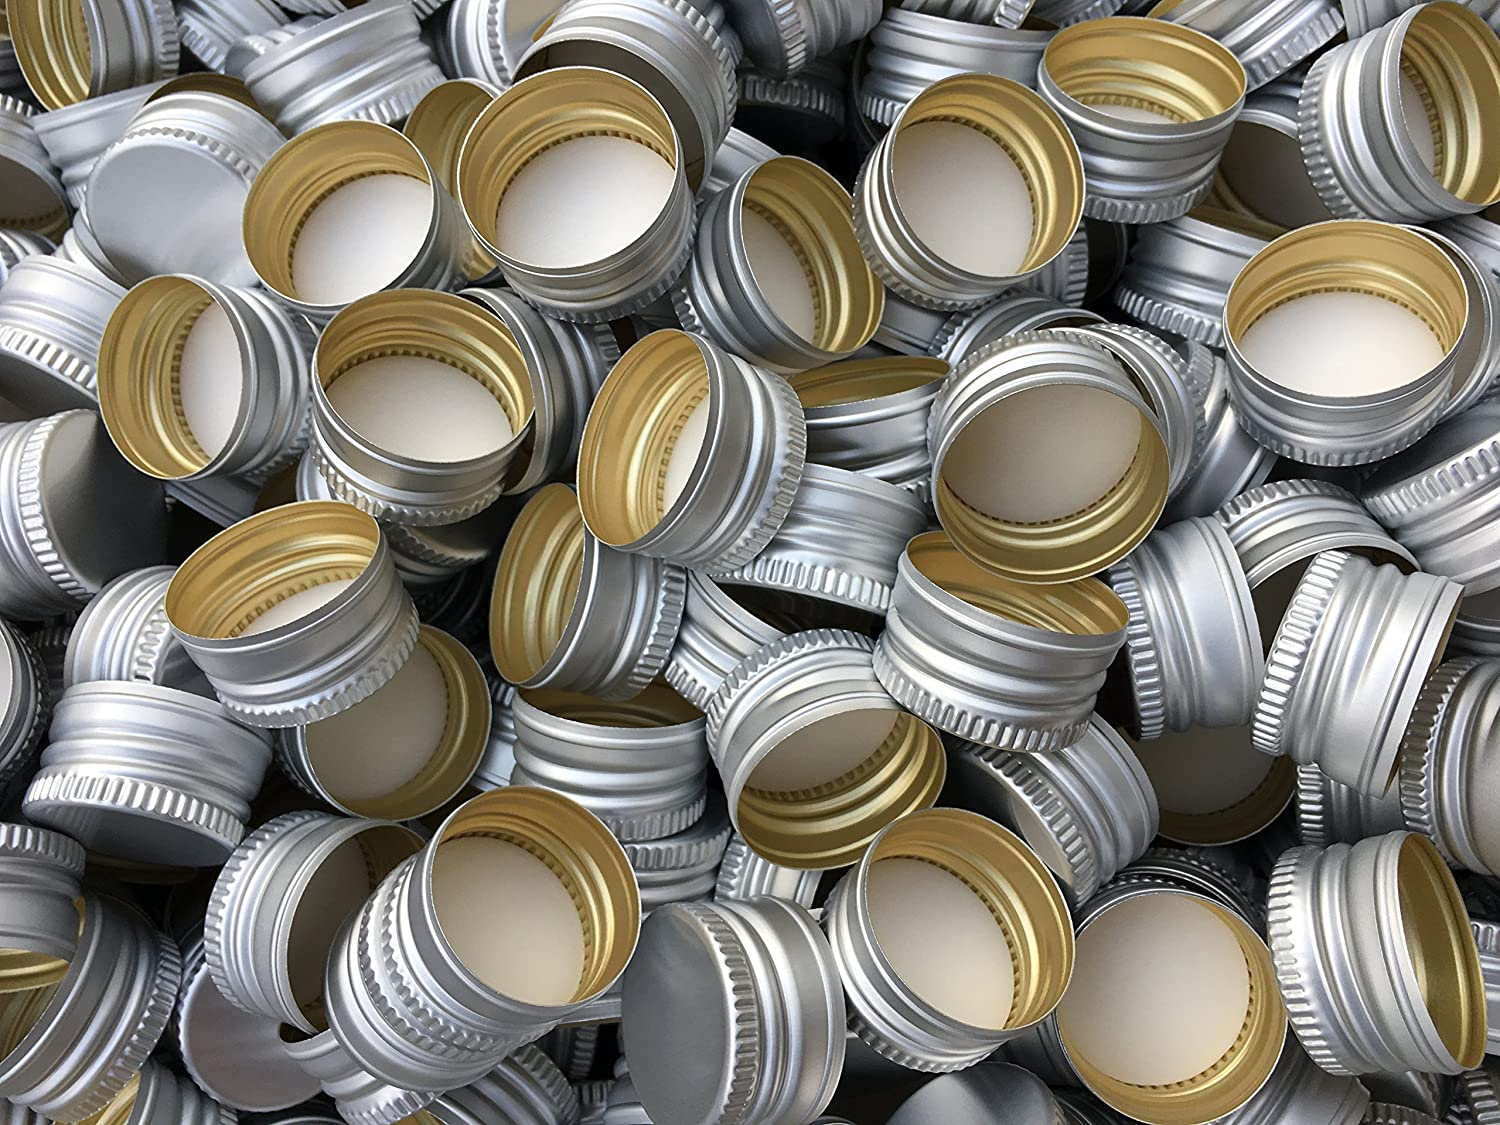 15,25,50,75 or 100 piece PP28 Replacement Screw Cap Bottle caps closures PP28 for most of all bottle shapes Slkfactory (15 piece) SLK GmbH